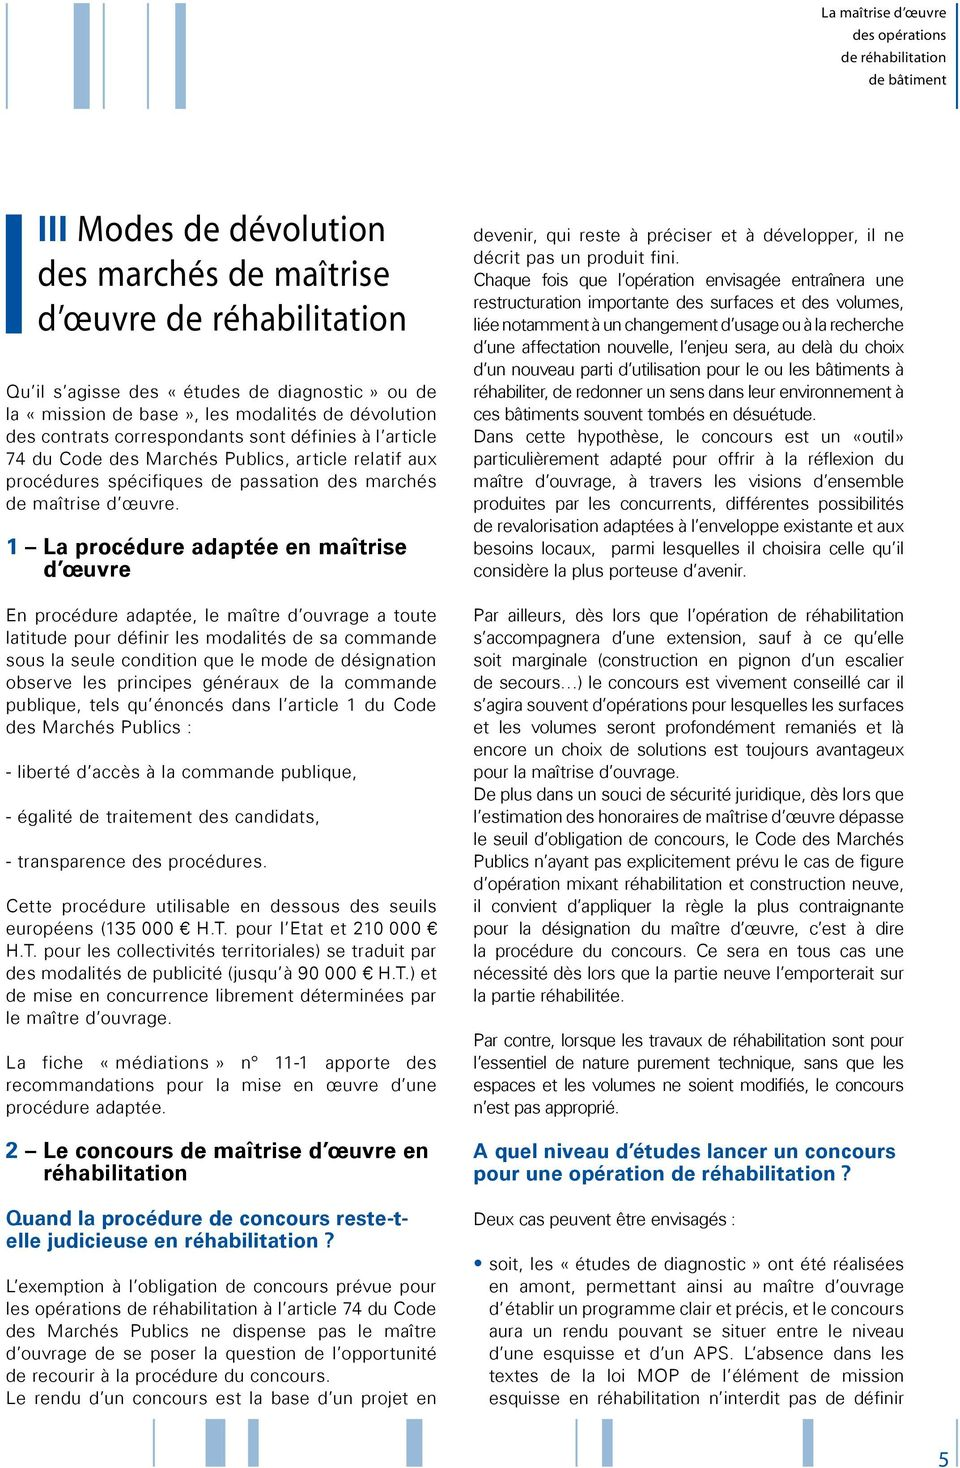 Mediations La Maitrise D œuvre Des Operations De Rehabilitation De